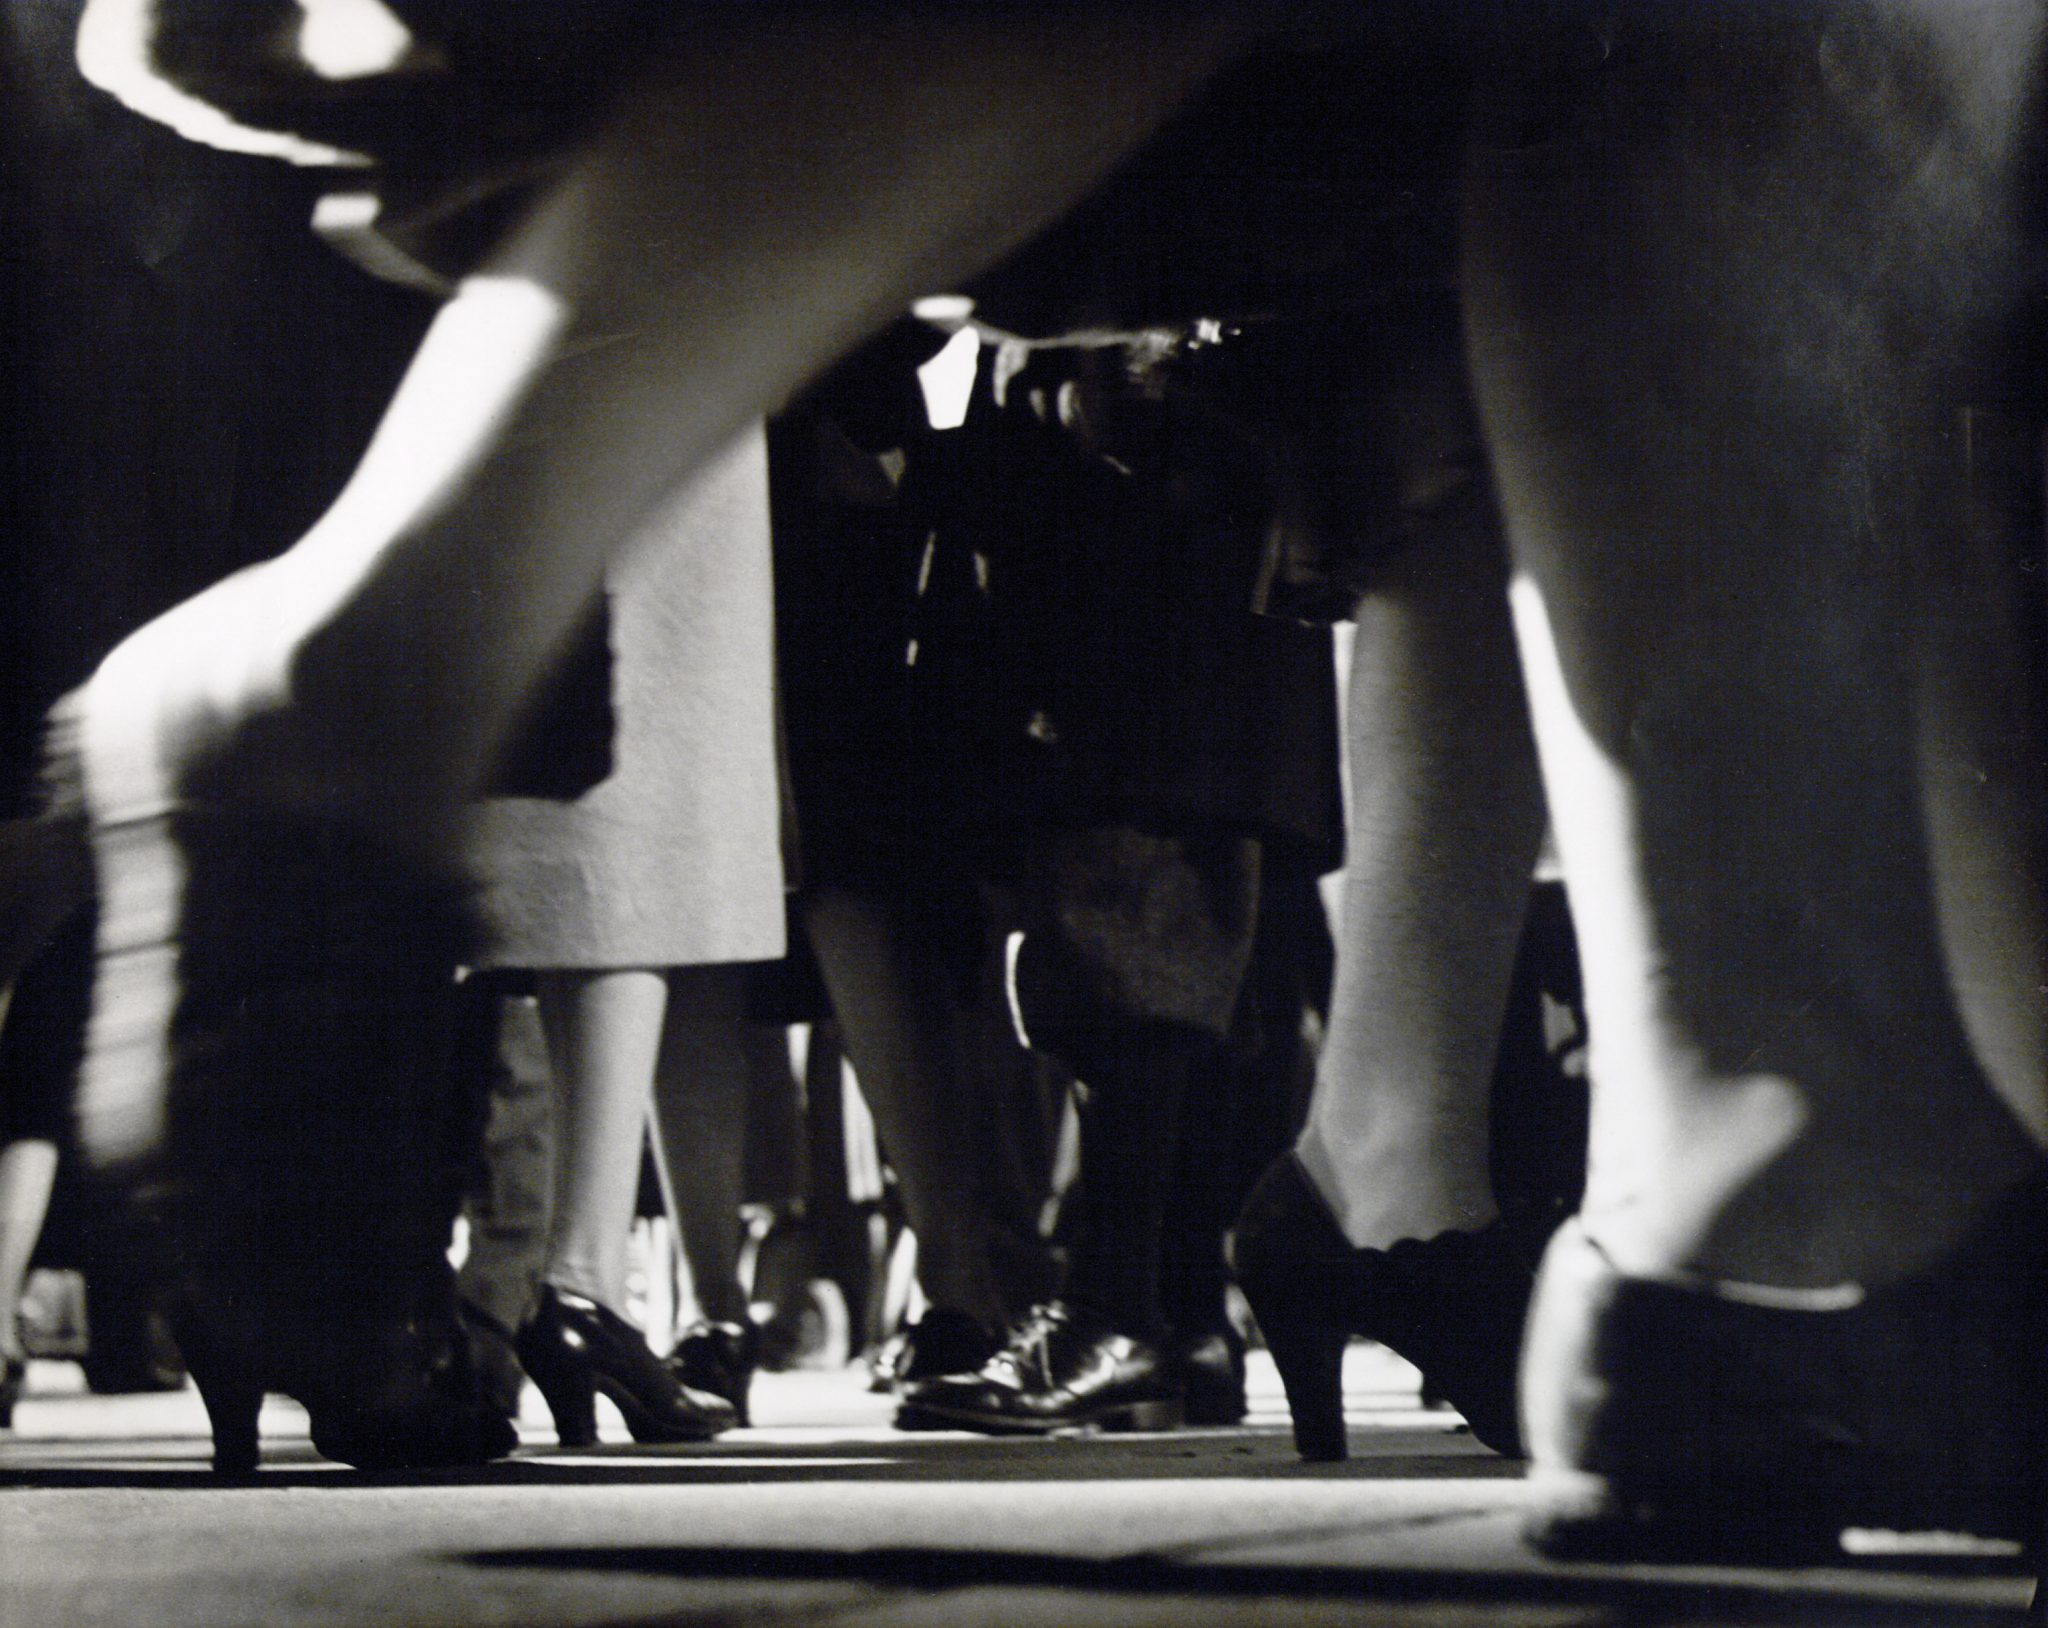 Lisette Model Laufende Beine 42. Straße, New York (Running Legs 42. Street, New York) 1940-1941 © Estate of Lisette Model, courtesy Albertina, Vienna